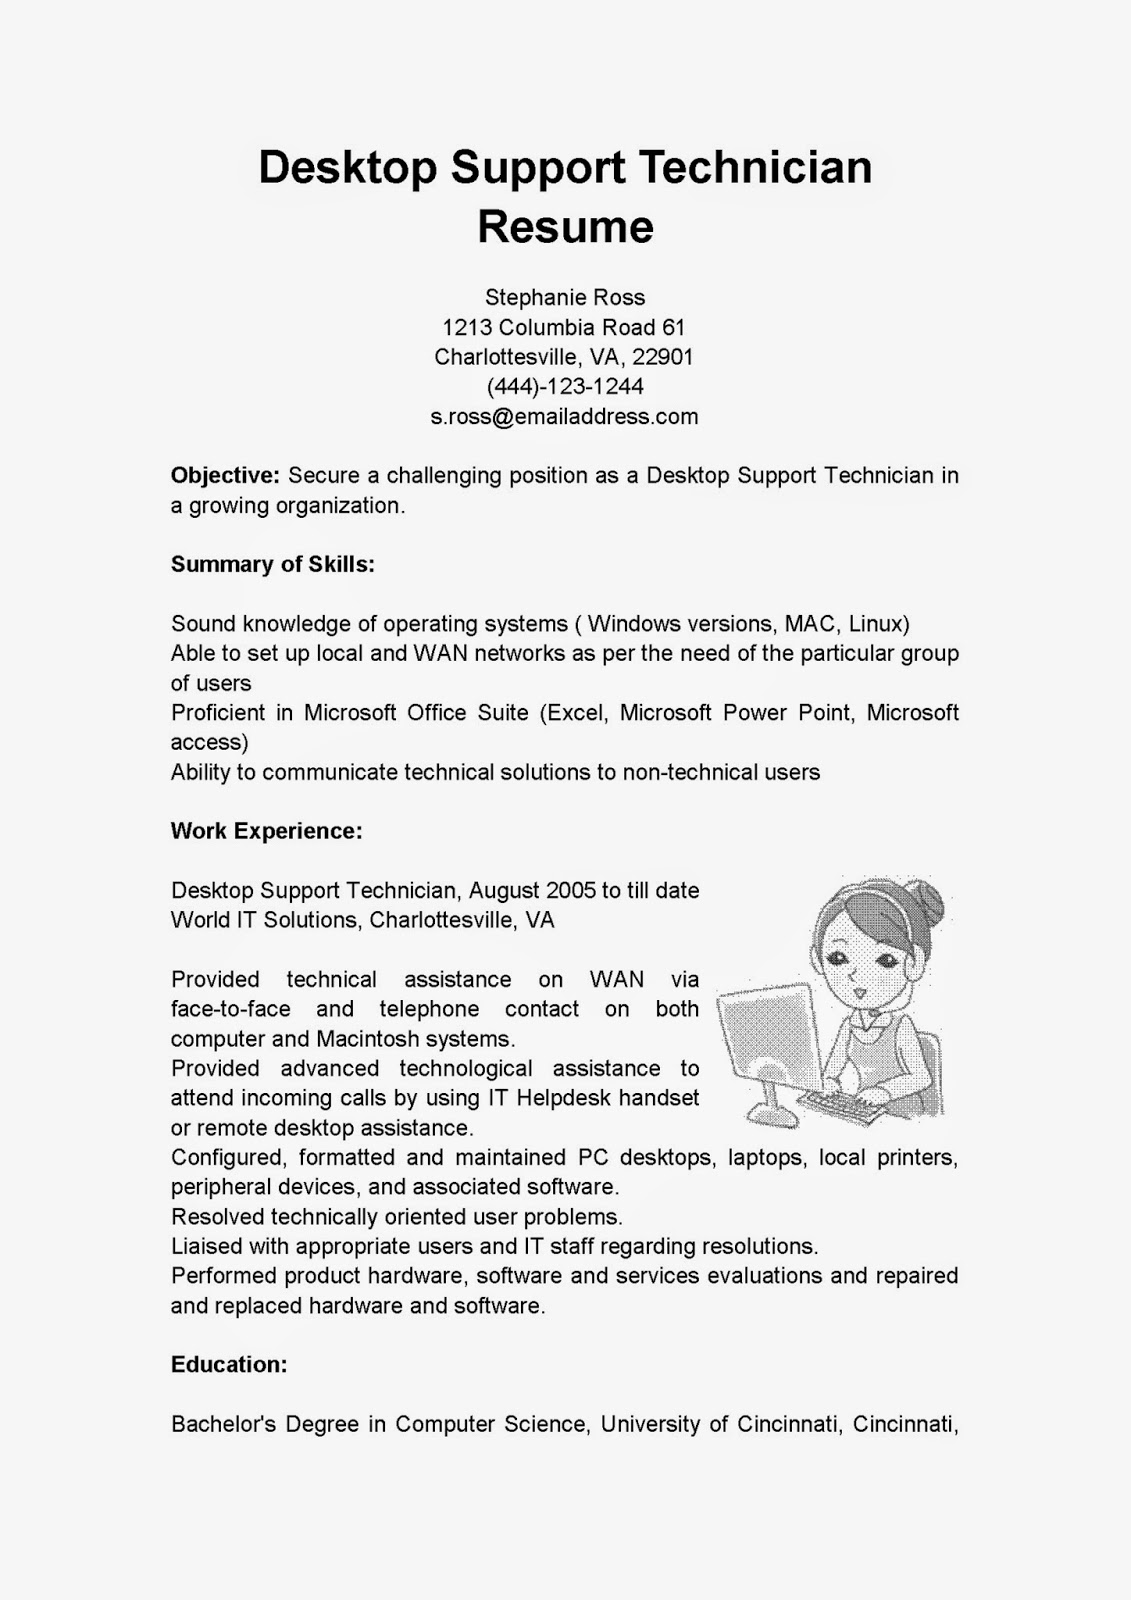 Leadership Skills Resume   Resume Format Download Pdf